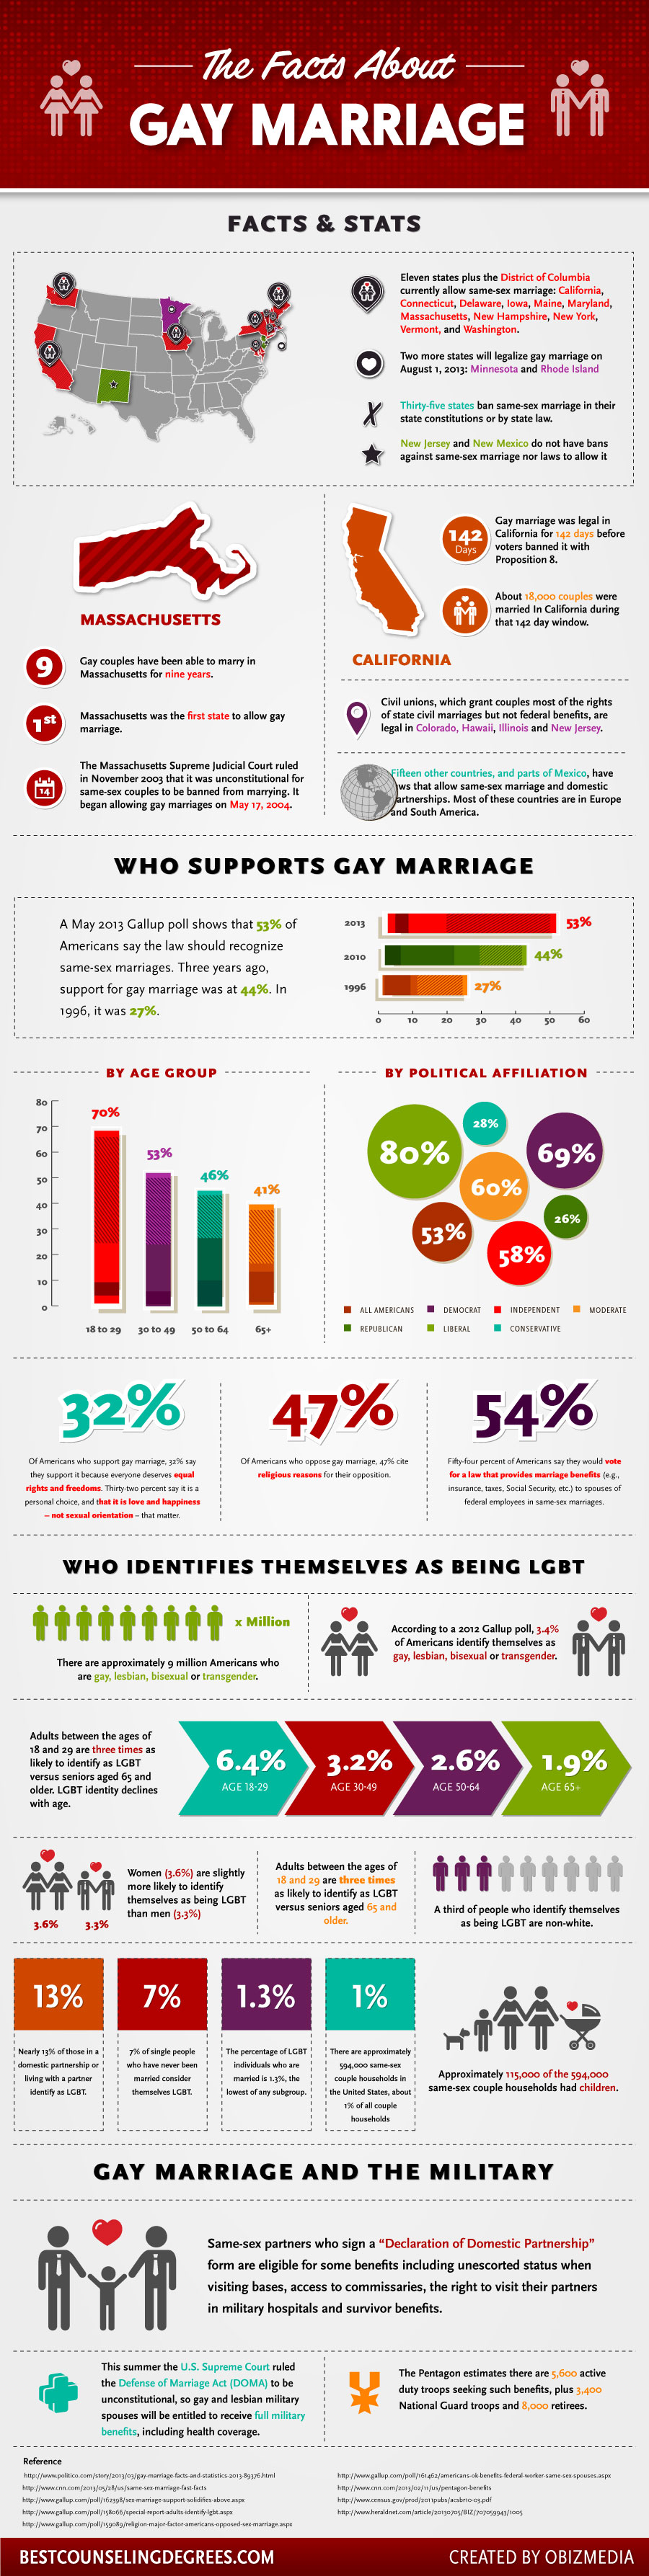 gay marriage facts stats infographic to be marriage facts and stats about same sex marriage infographic gay lgbt